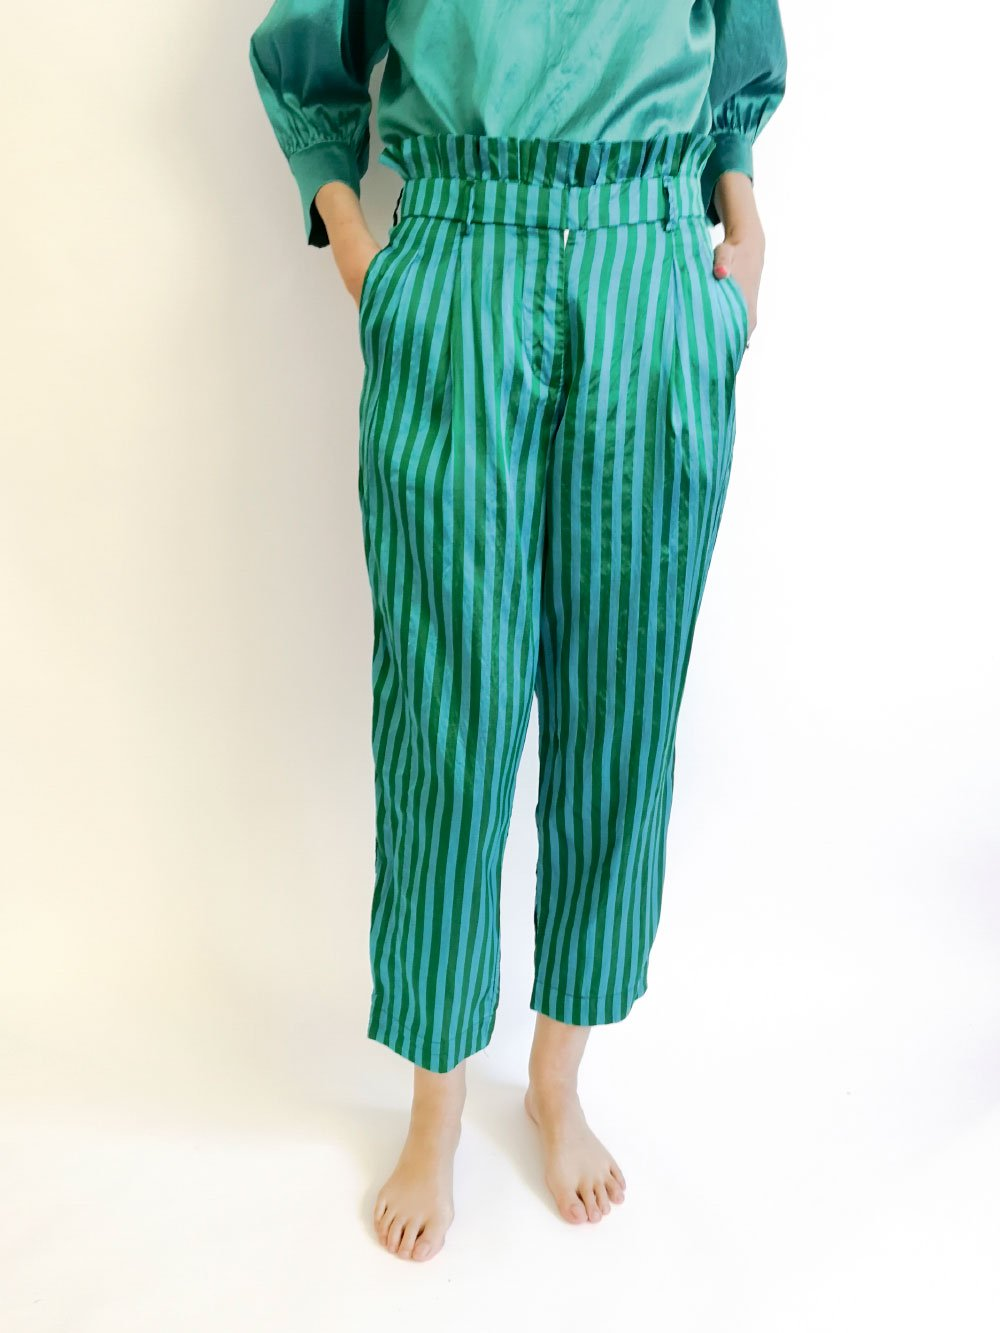 Tucked Pants / blue × green